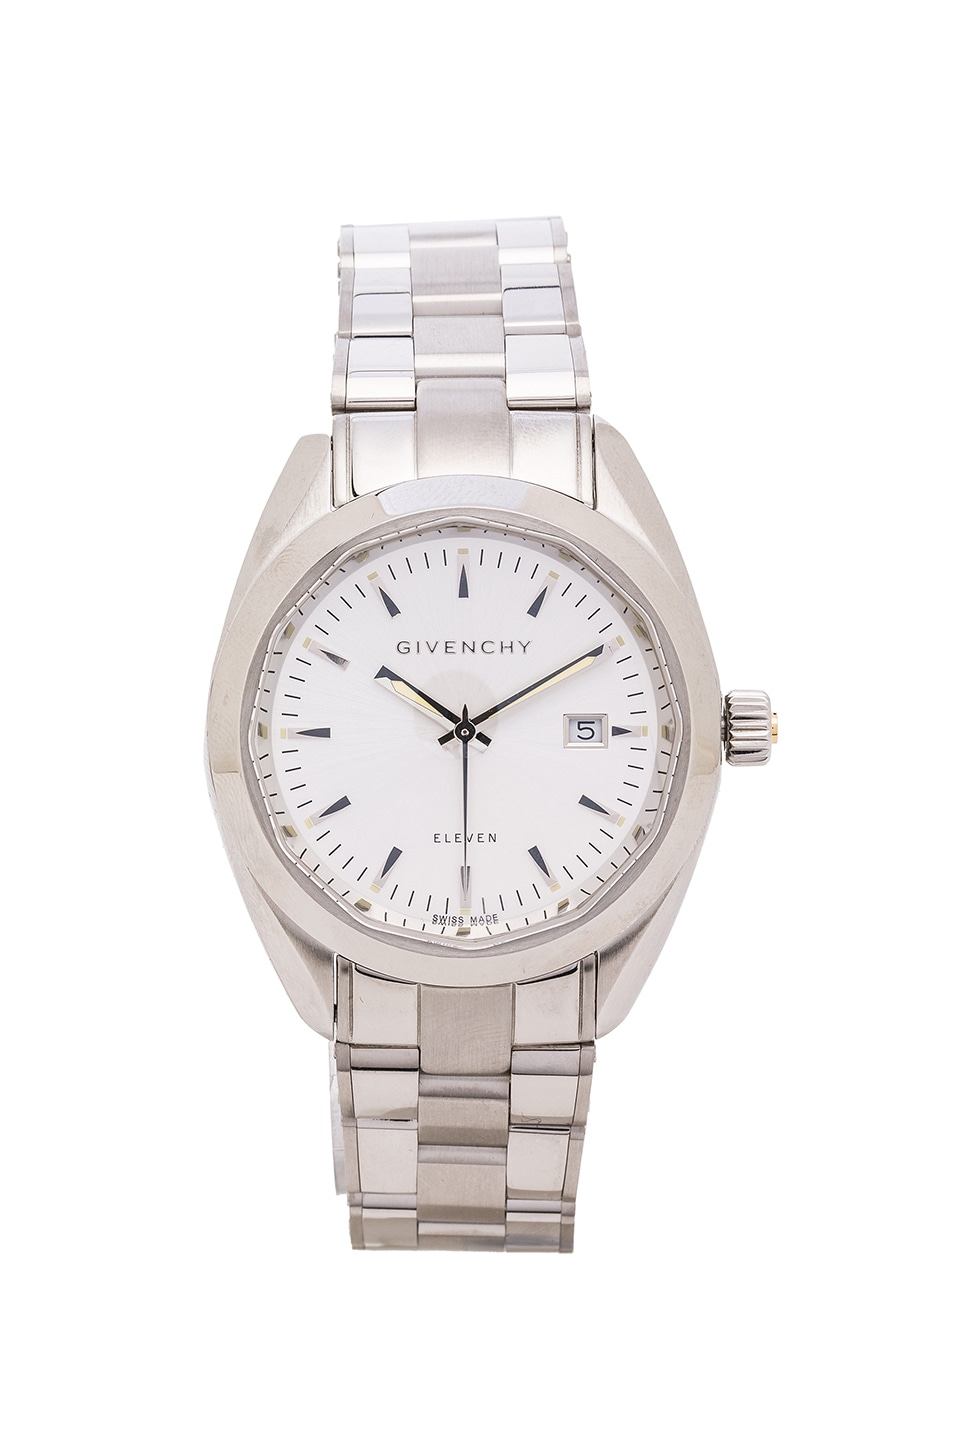 Image 1 of Givenchy Eleven 40MM in White & Silver